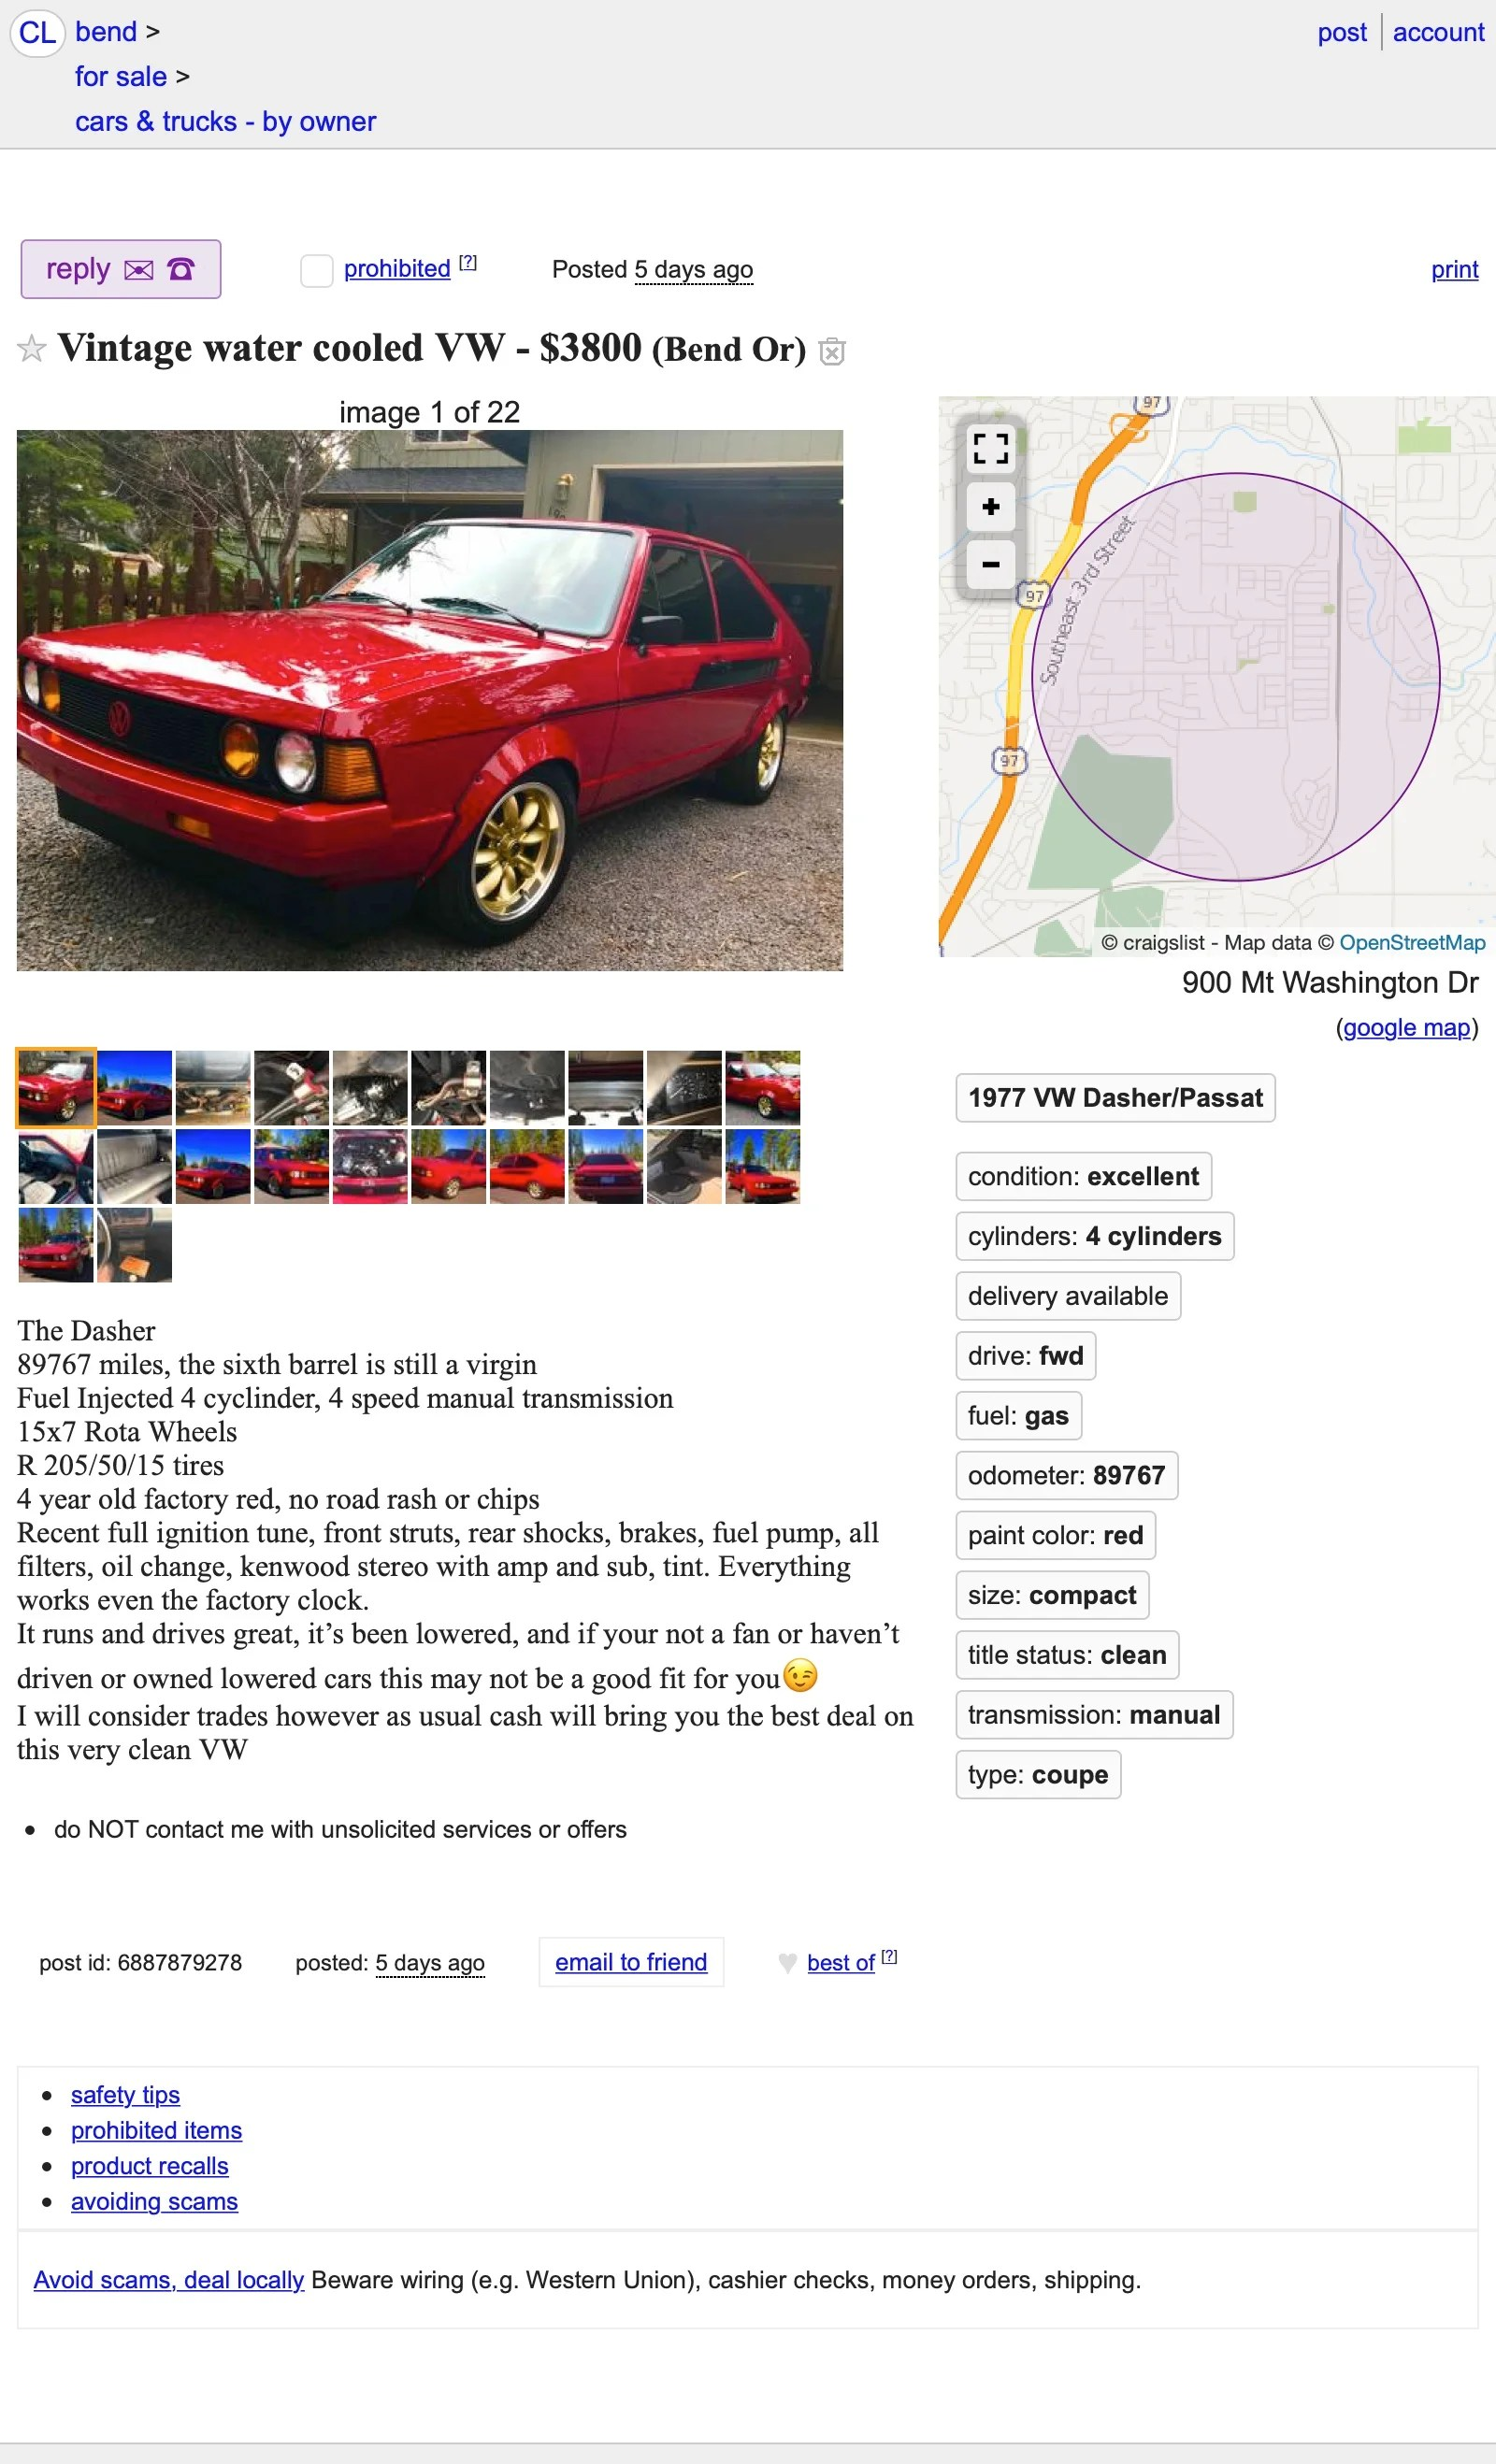 Craigslist Bend Cars And Trucks By Owner : craigslist, trucks, owner, ,800,, Could, Classic, Dasher, Dashing, Purchase?